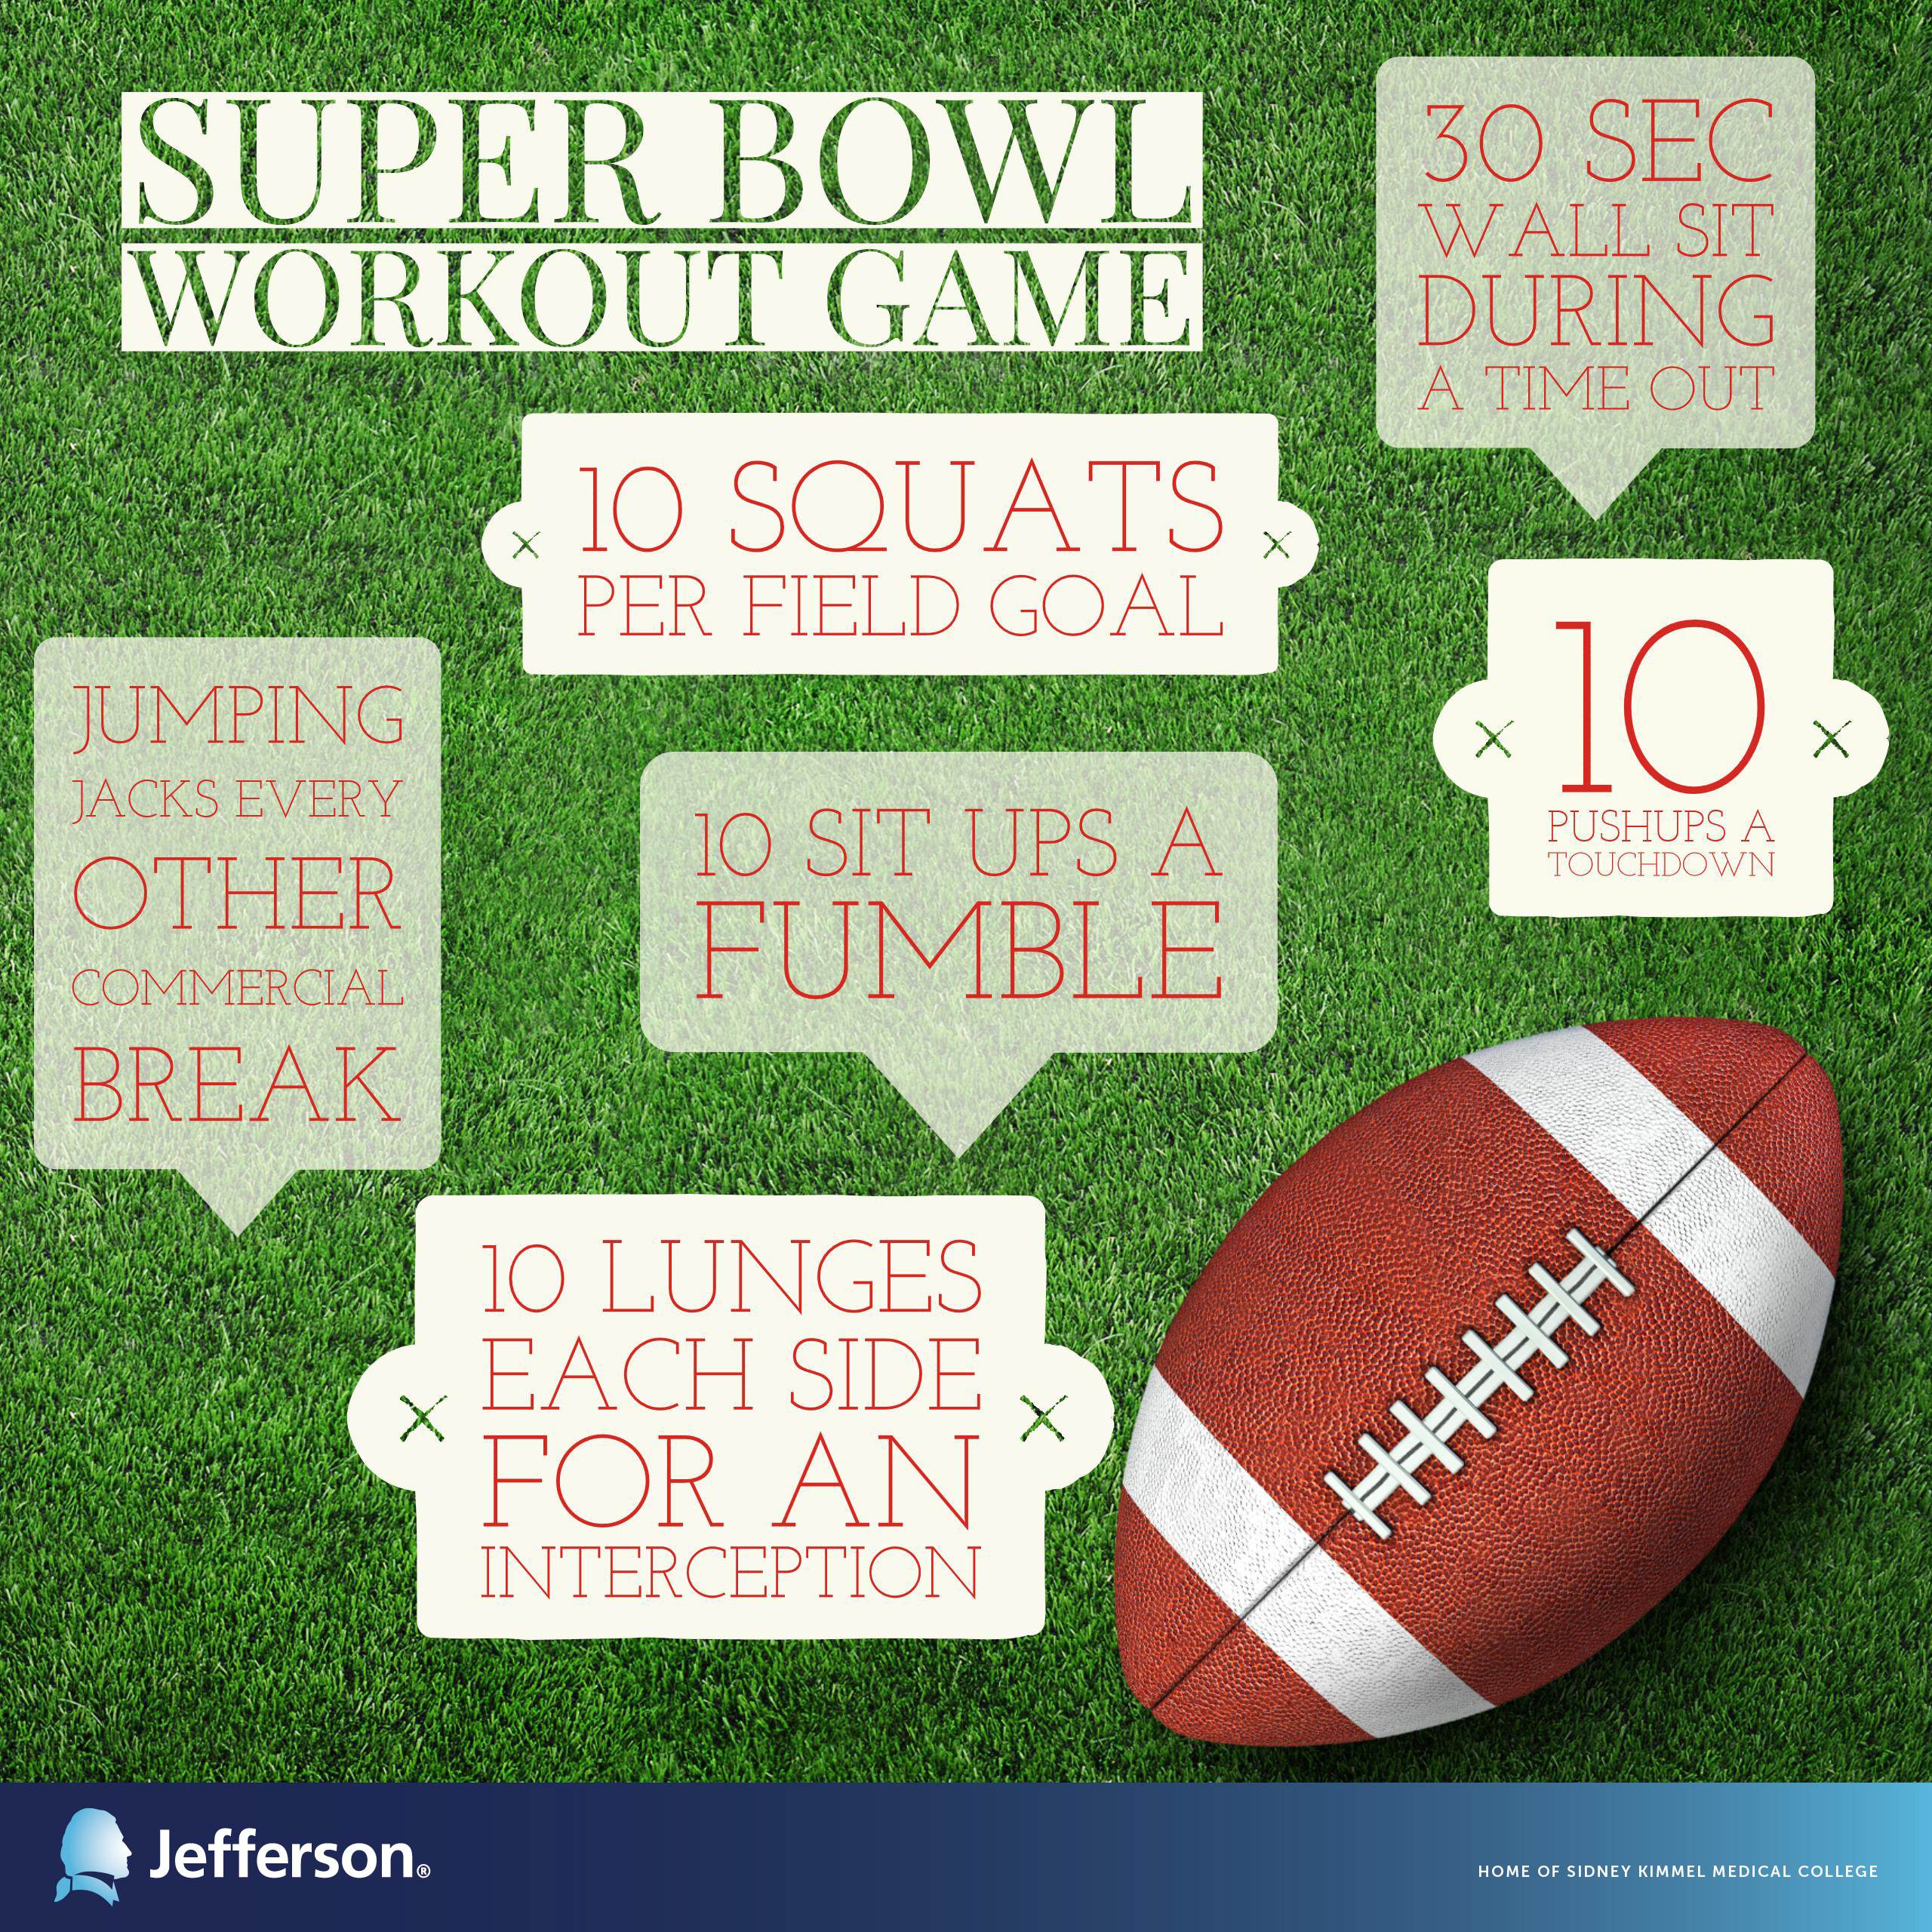 Workout Games: A Super Bowl Fitness Challenge